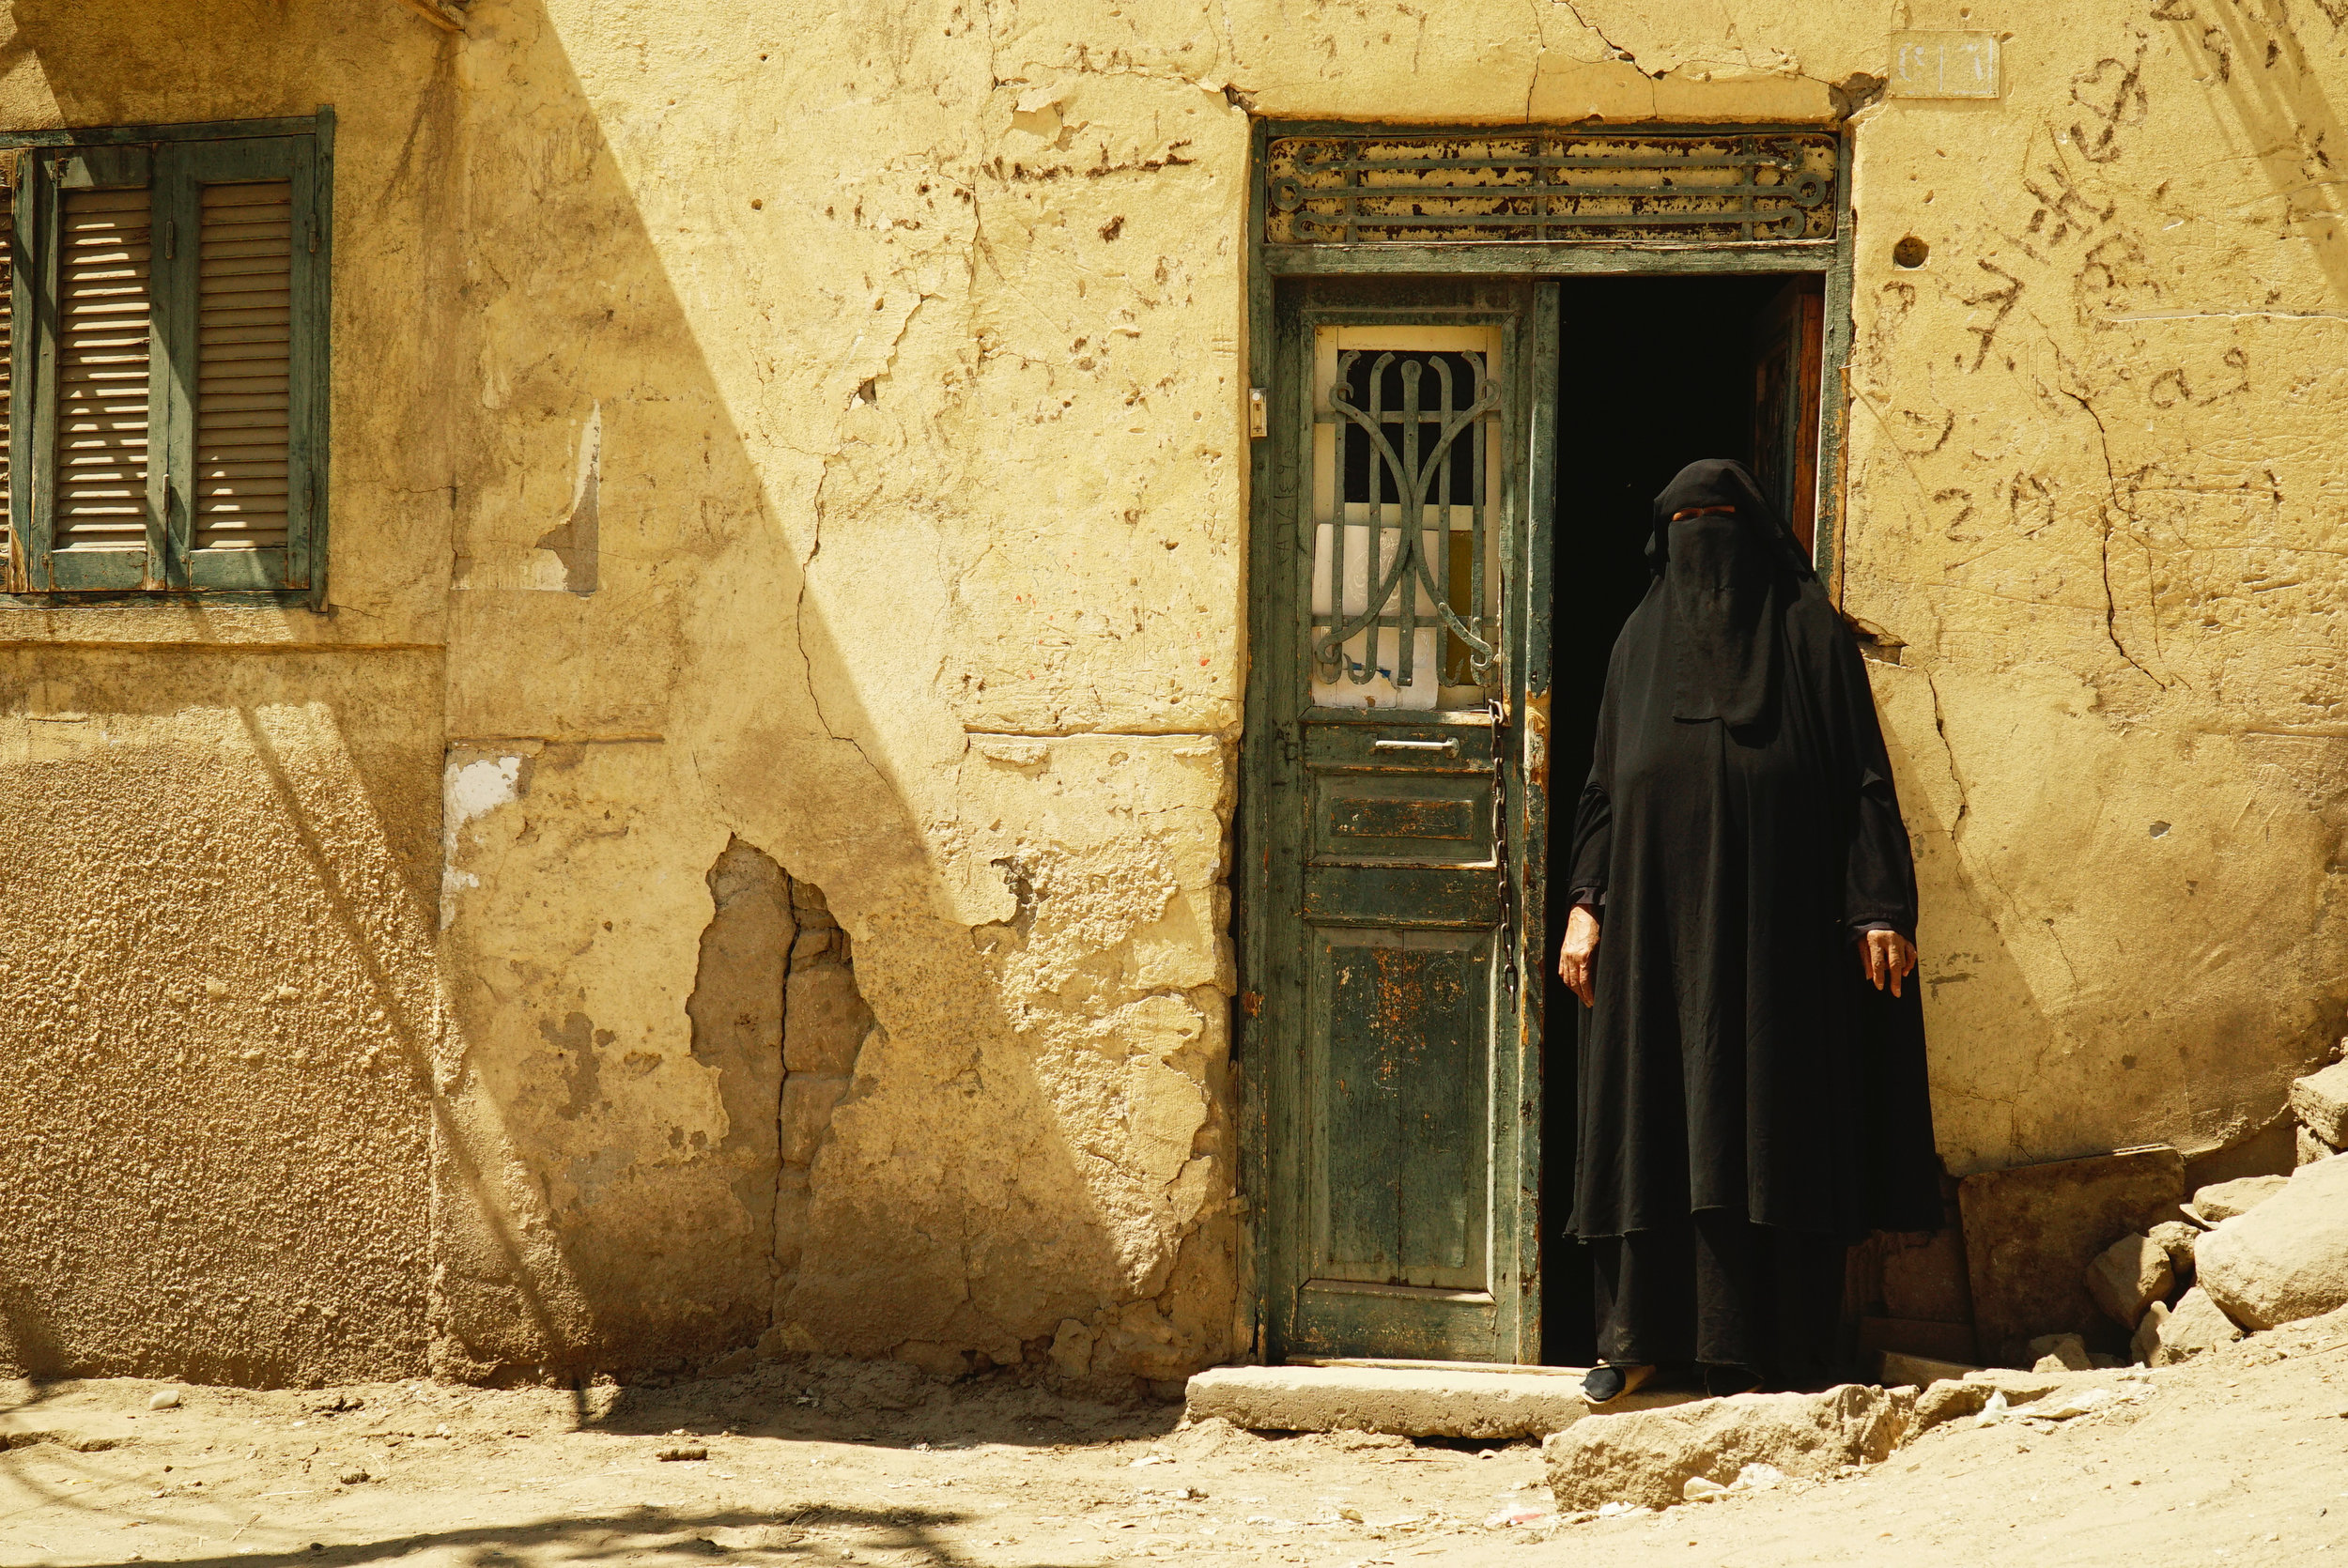 Monia_Lippi_Aswan Woman with Niquab.jpg